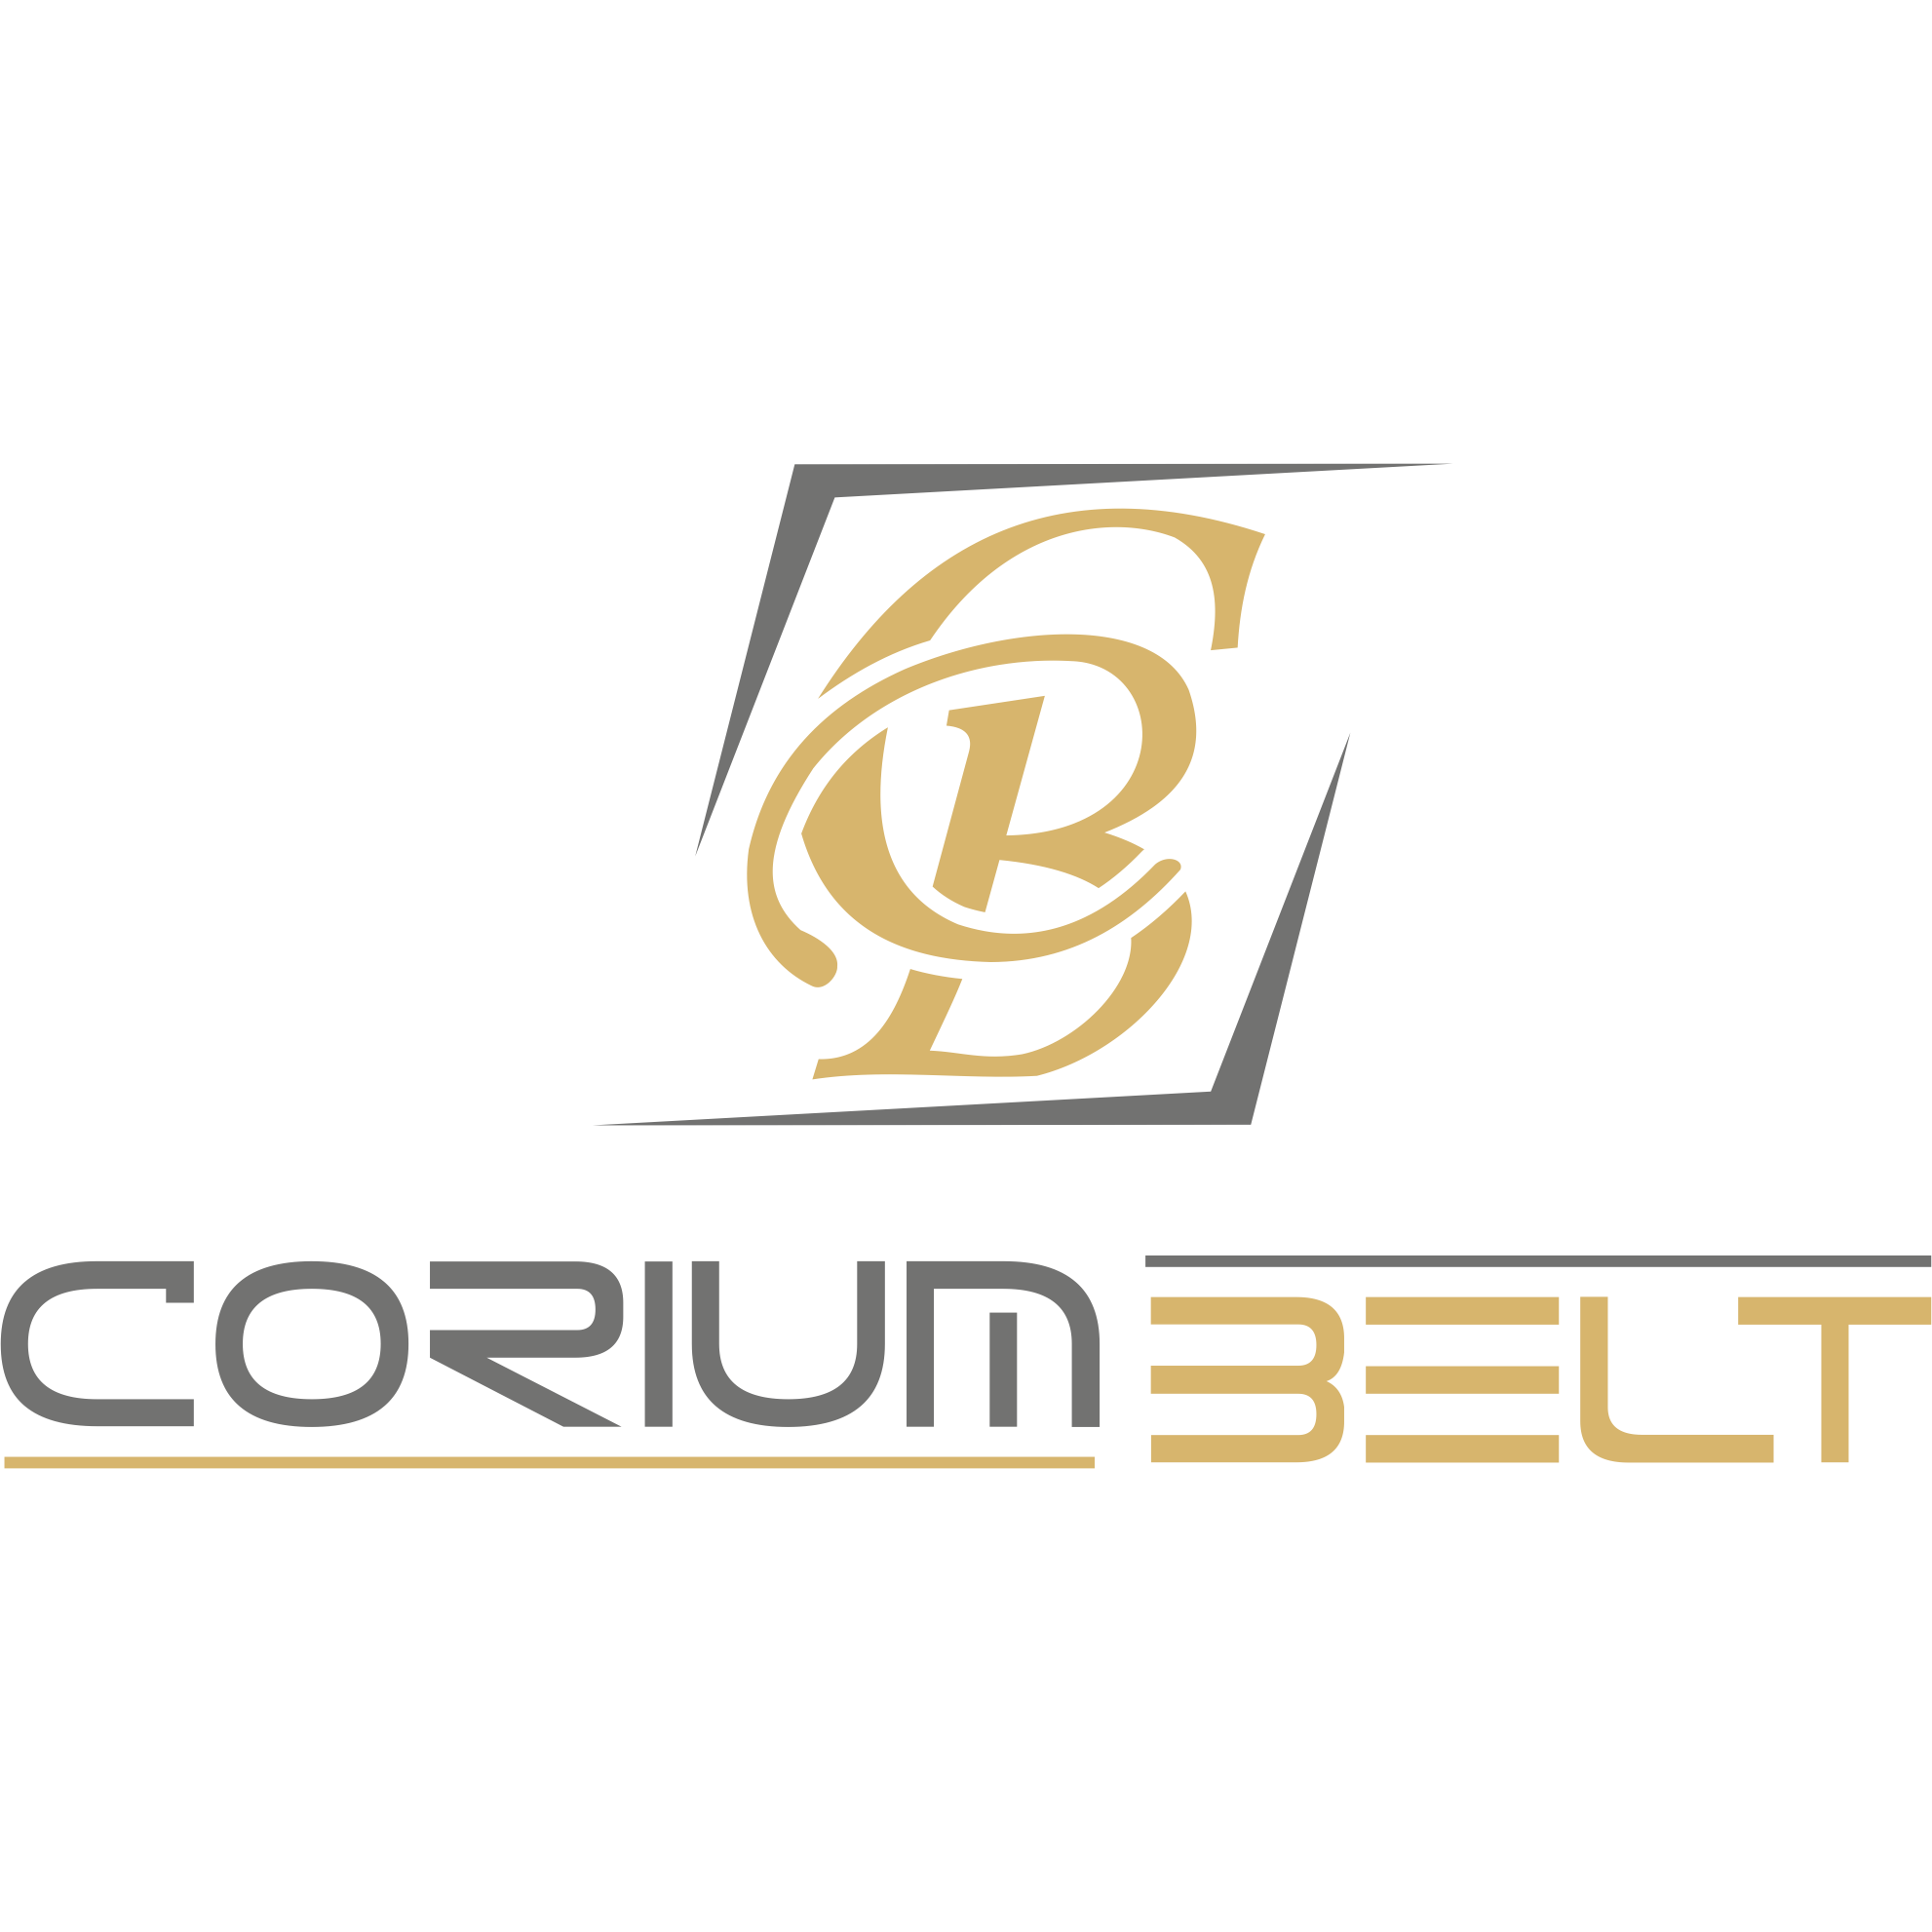 CORIUM BELT DERI LTD. STI.